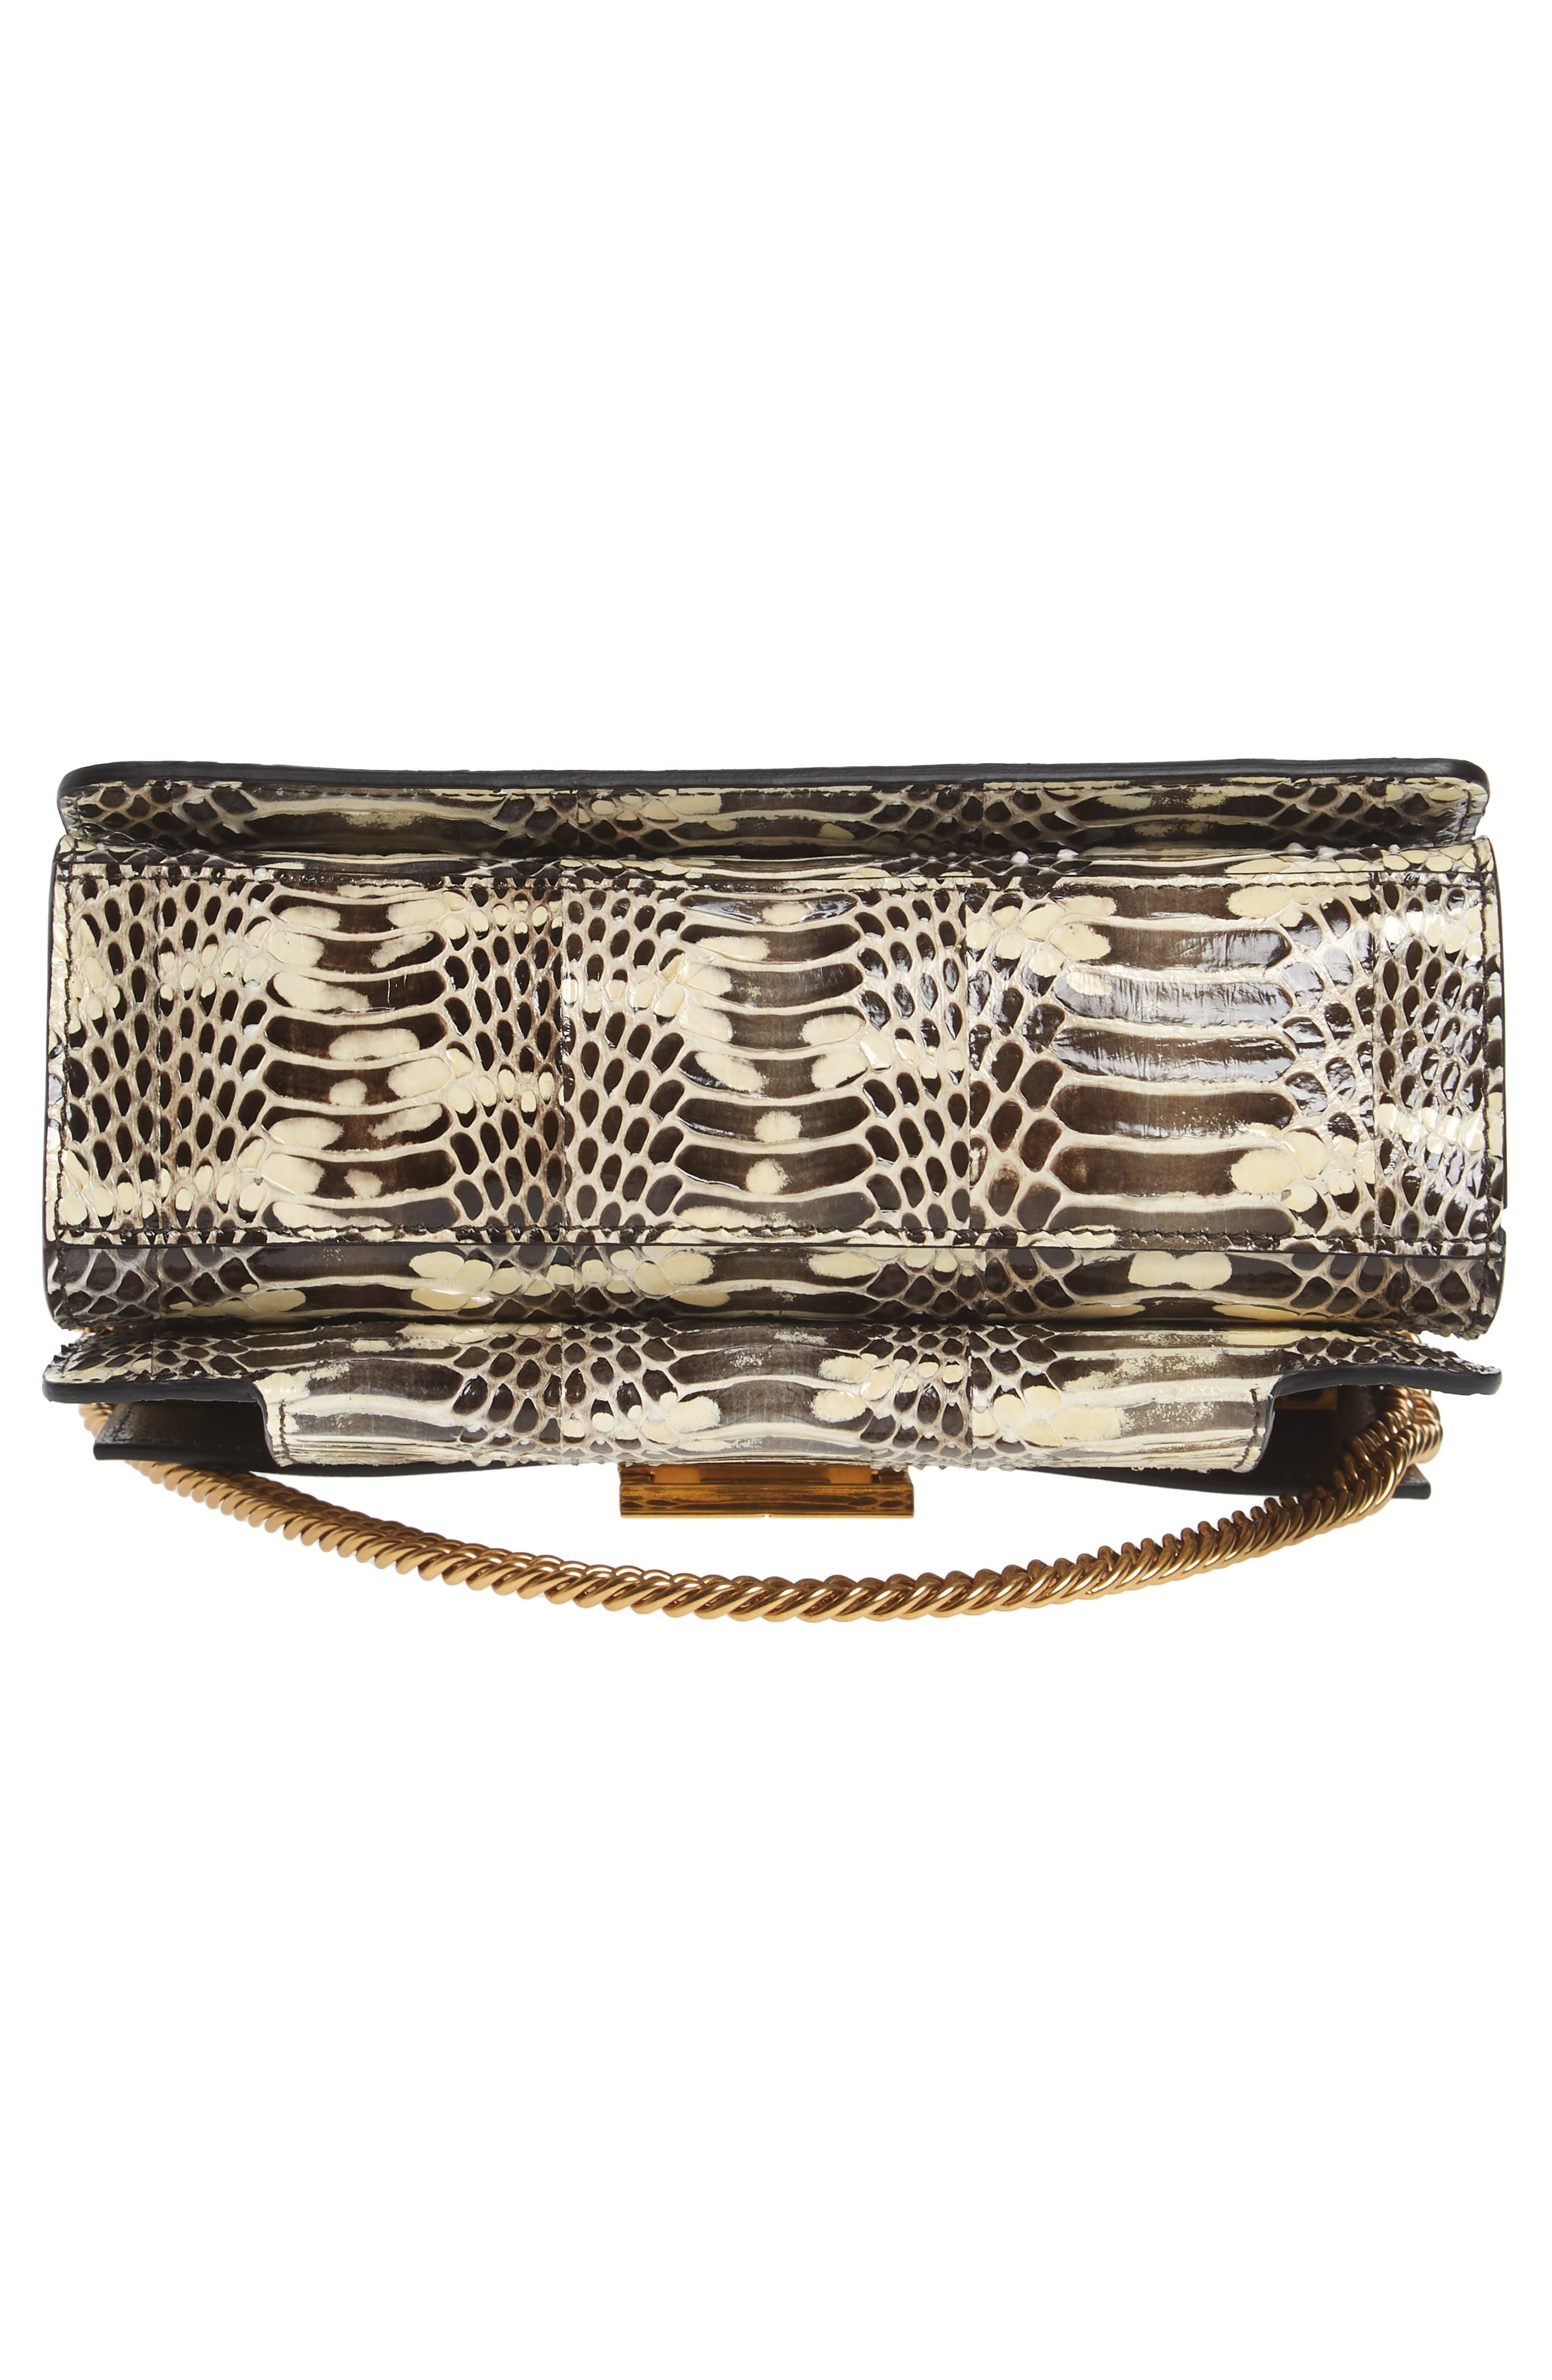 Small GV3 Genuine Snakeskin & Leather Crossbody Bag,                             Alternate thumbnail 6, color,                             001